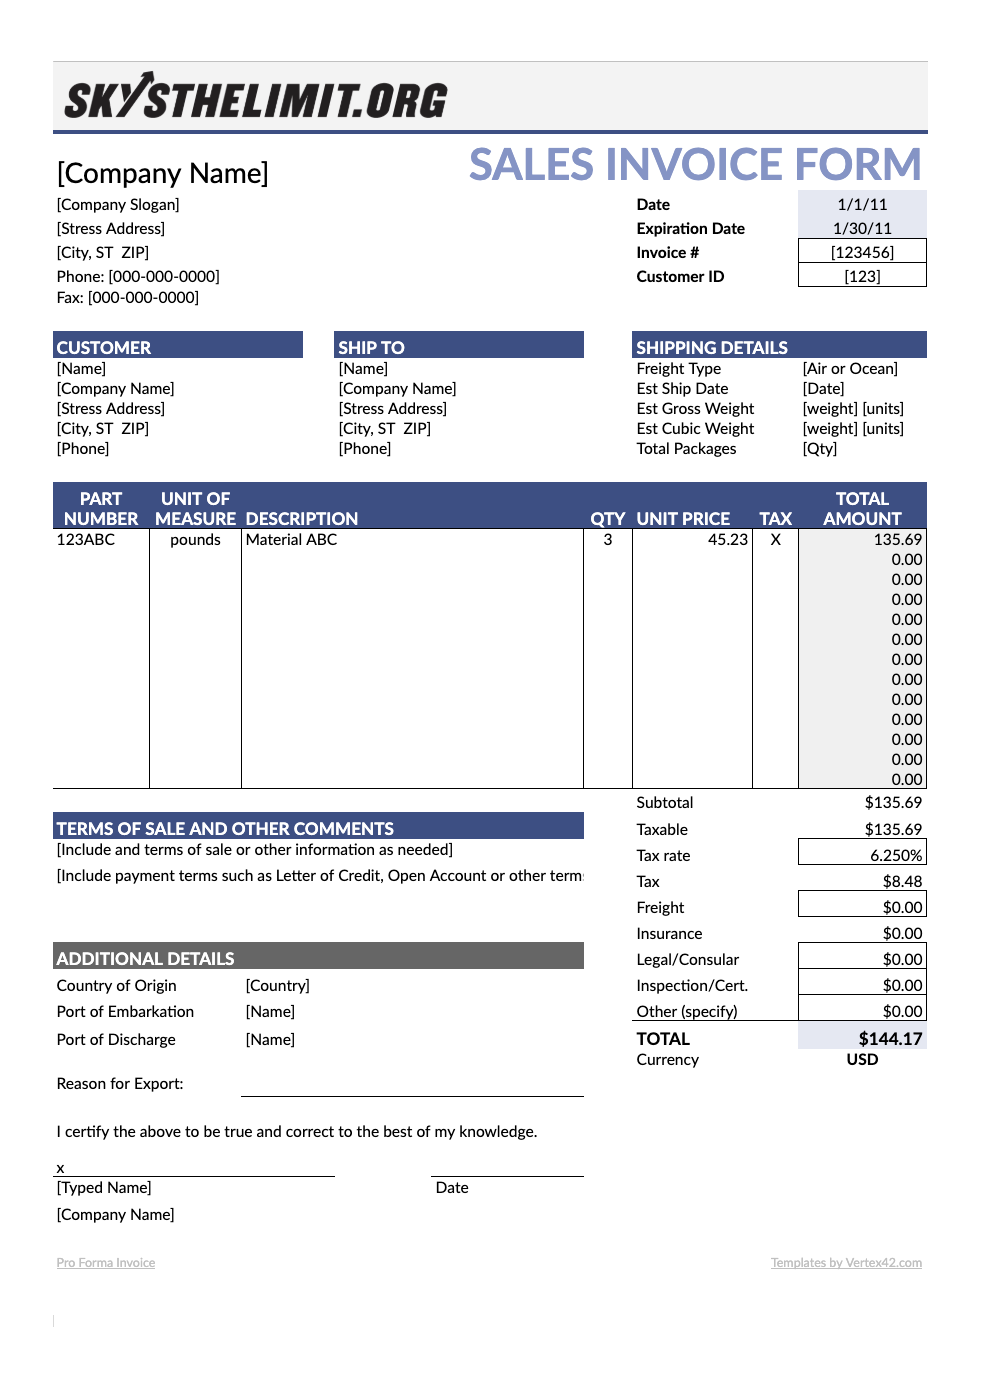 Sales Receipt Template - Click the button to copy our template to your Google Drive, or download an excel version here.